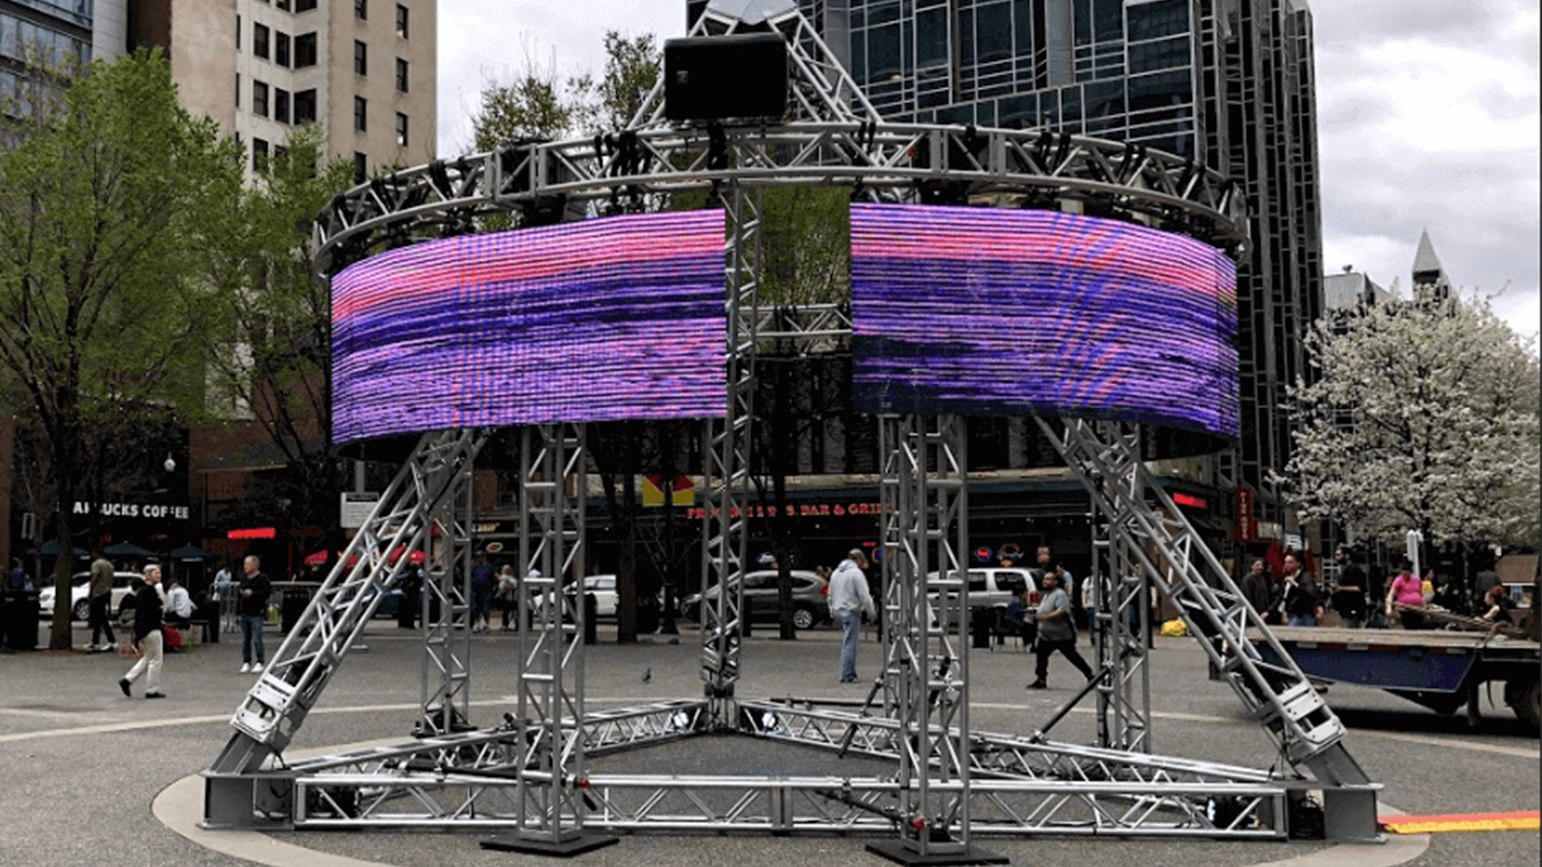 Image of circular video screens on a pyramid structure installed in a the middle of a public square